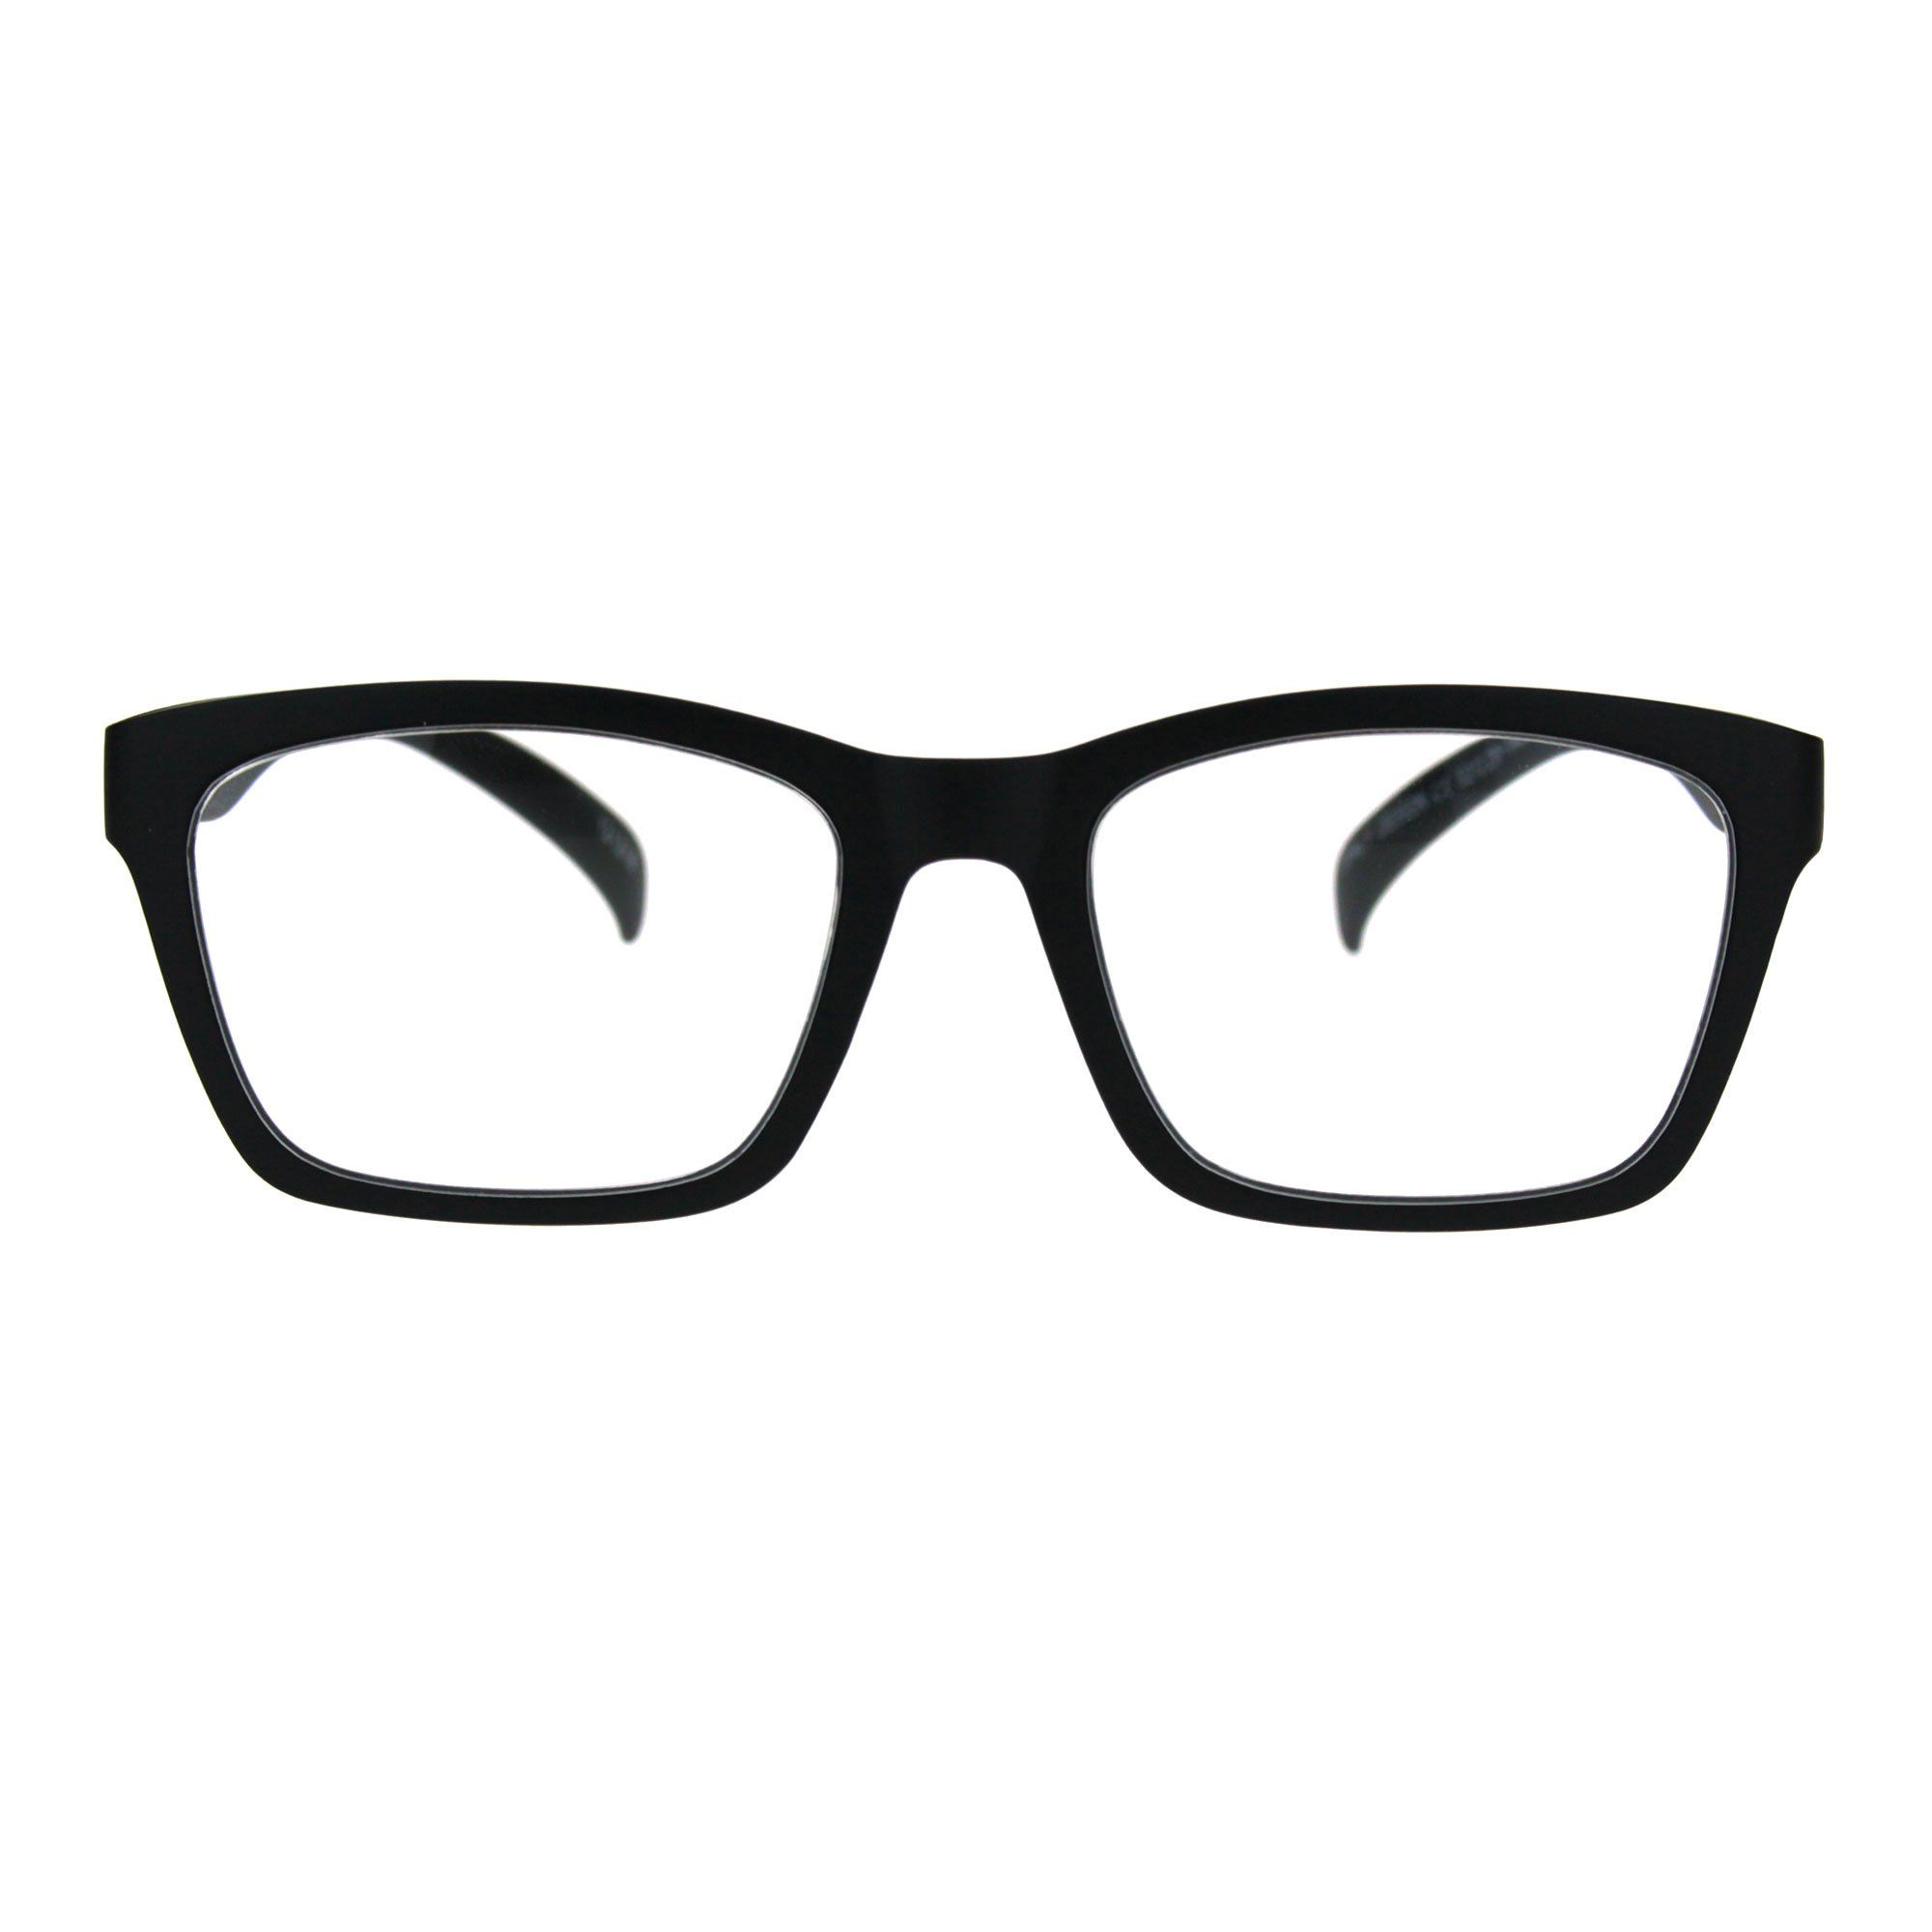 01d2794ac468 Reading Glasses Flexible Rectangular Matted Frame Magnified Readers Black  1.75 -- Check out this great product.(It is Amazon affiliate link)   ...